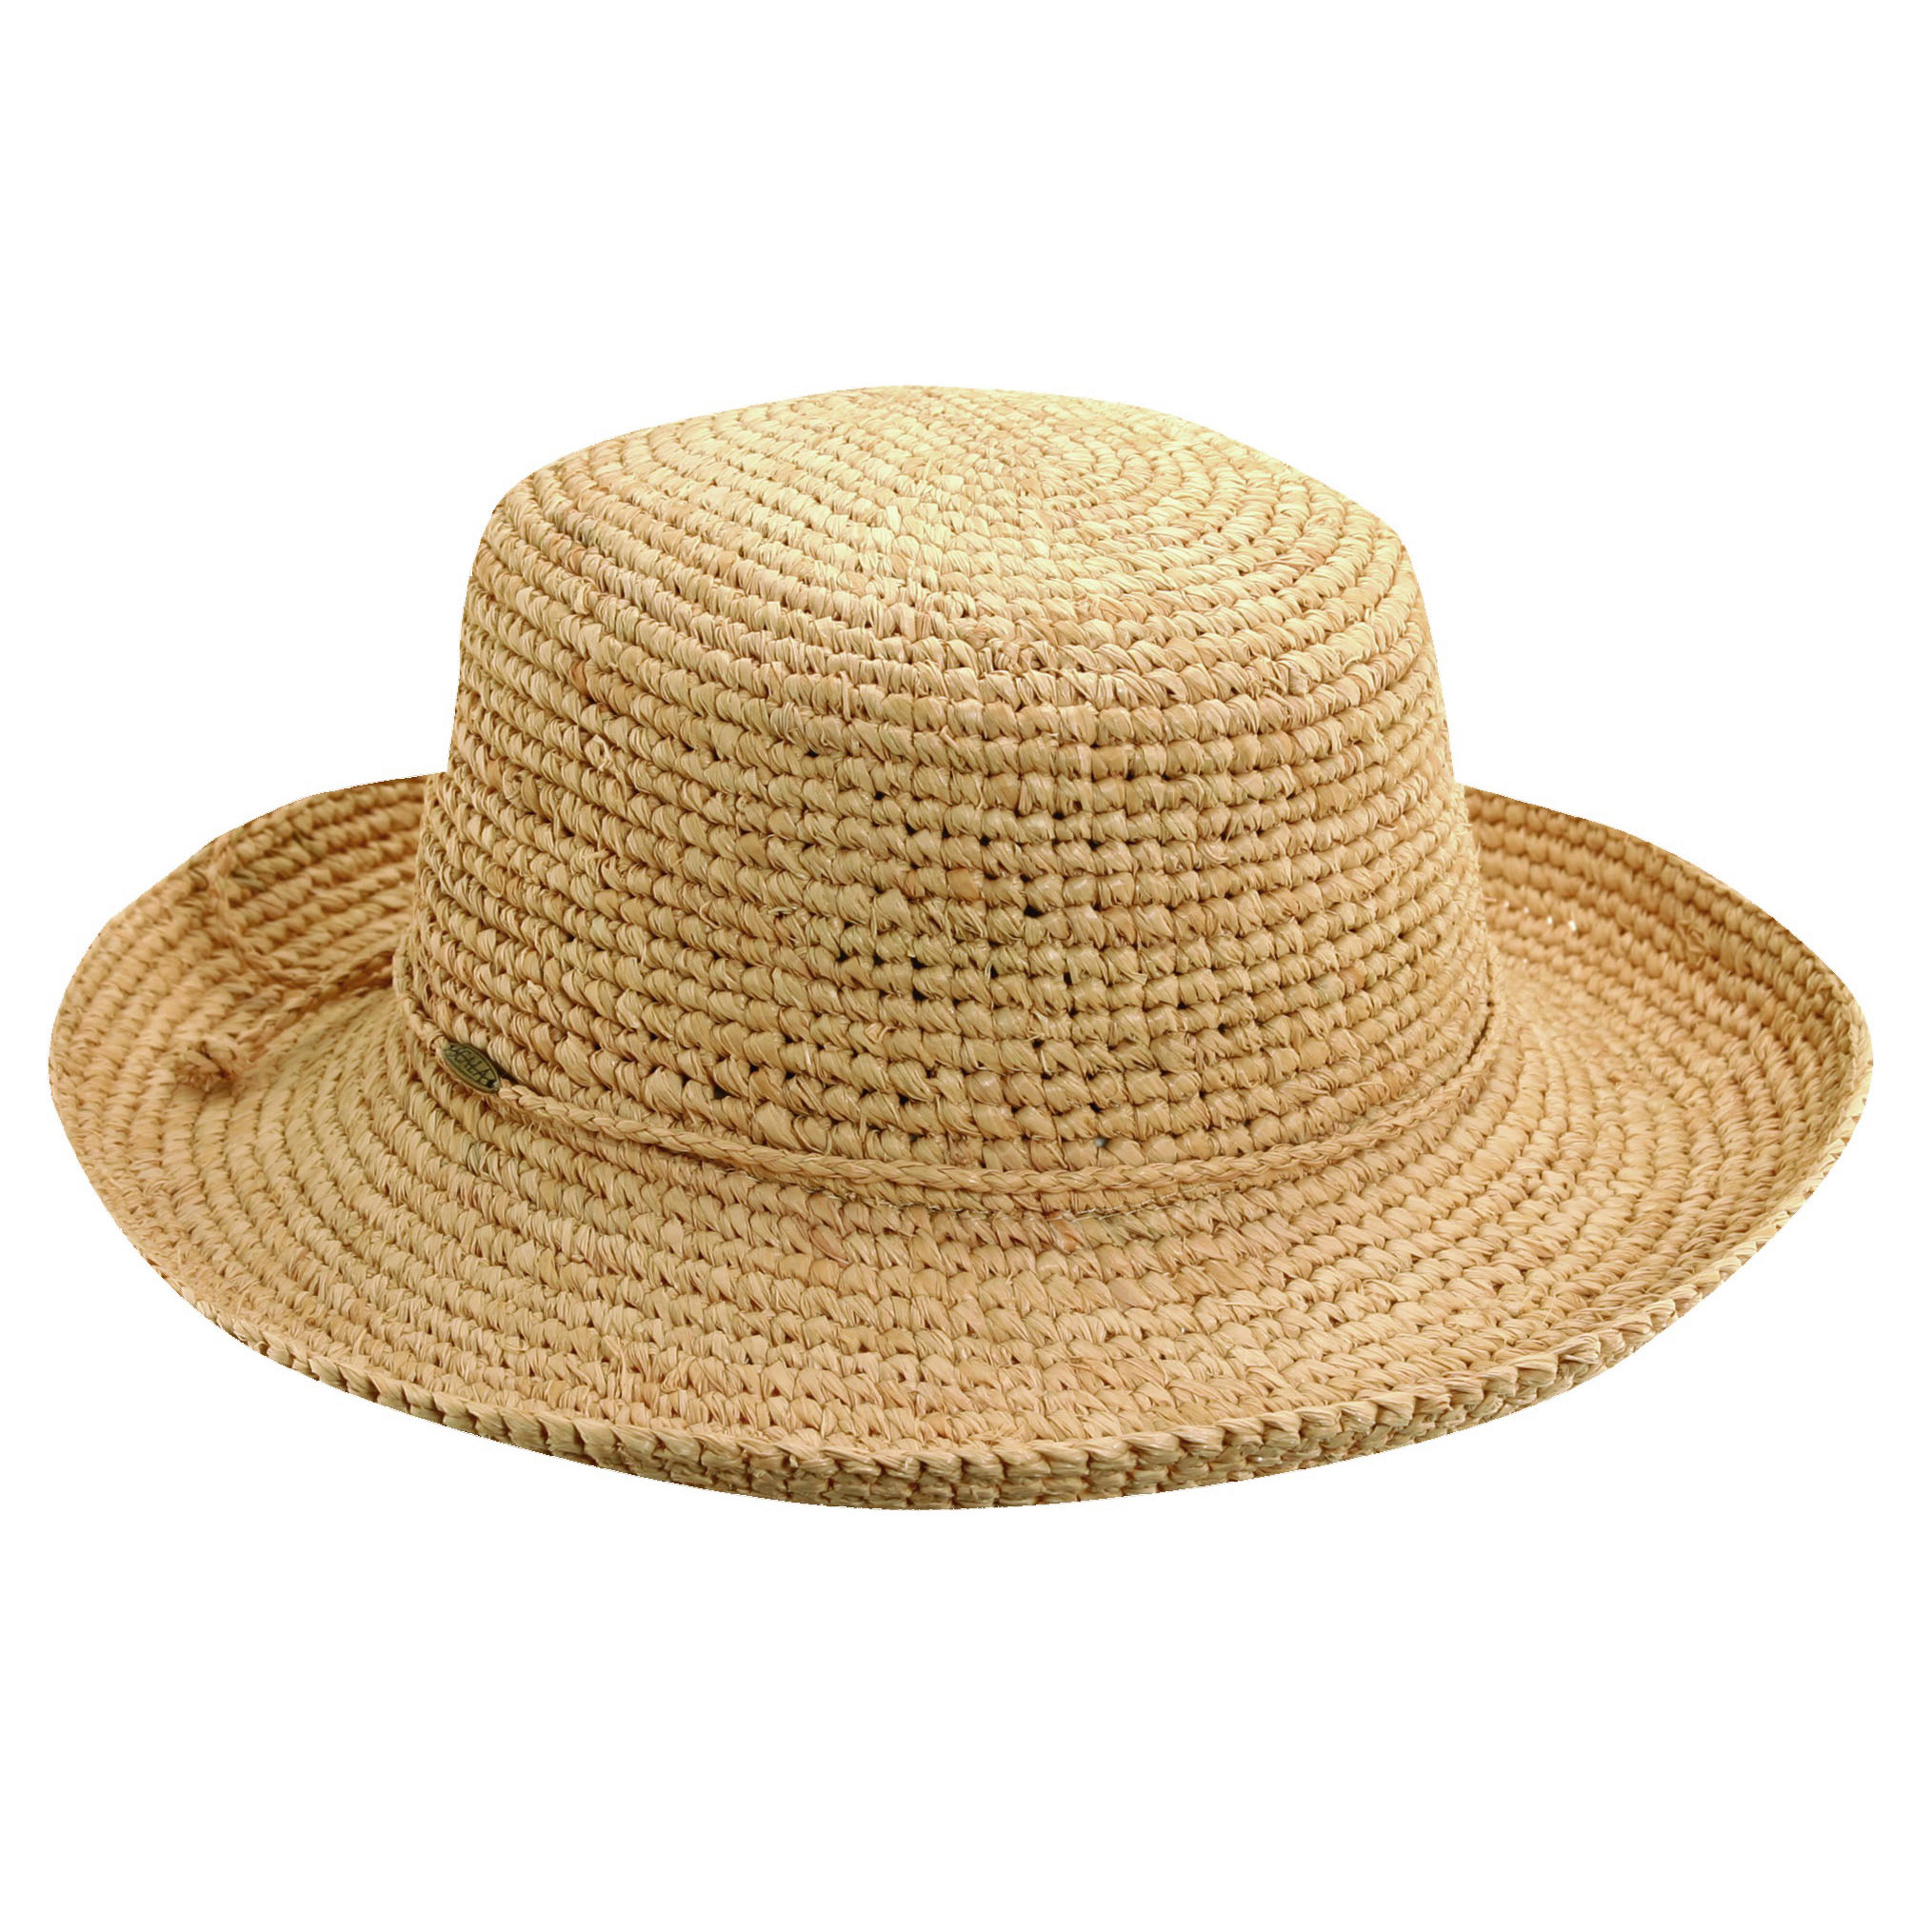 I've tried several other sun hats, but usually the cape is so light that the slightest wind blows it up and back to the sides or top of the hat. The draw cord on the Sun-runner prevents this. It is a well-made hat /5(91).